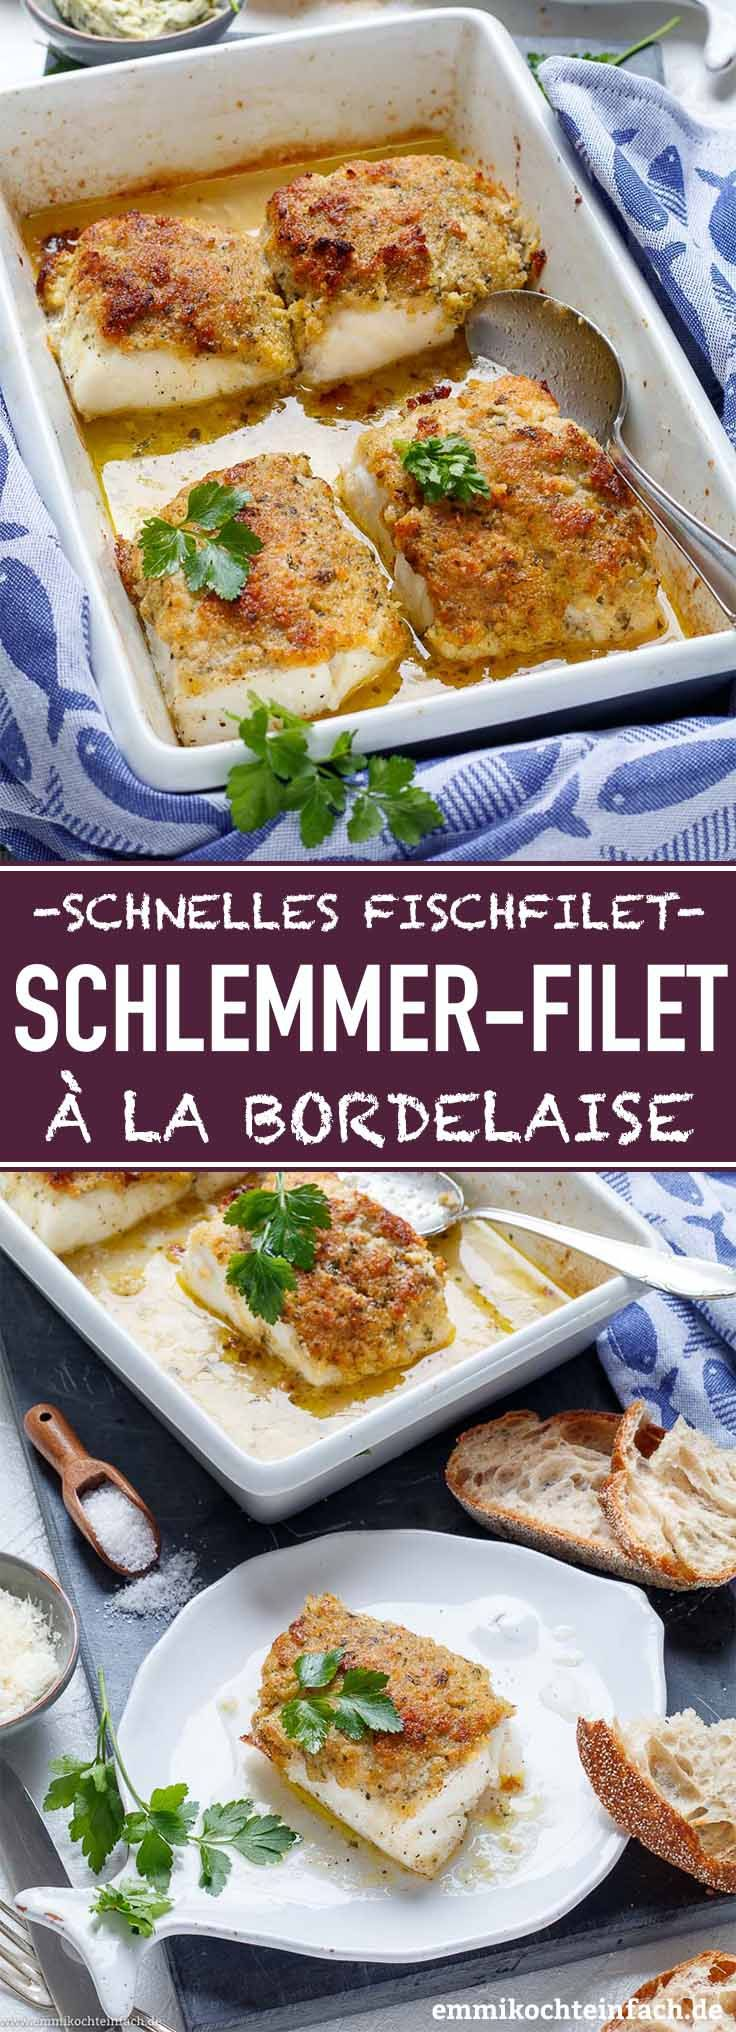 Photo of Gourmet fillet à la Bordelaise made easy – easy to cook